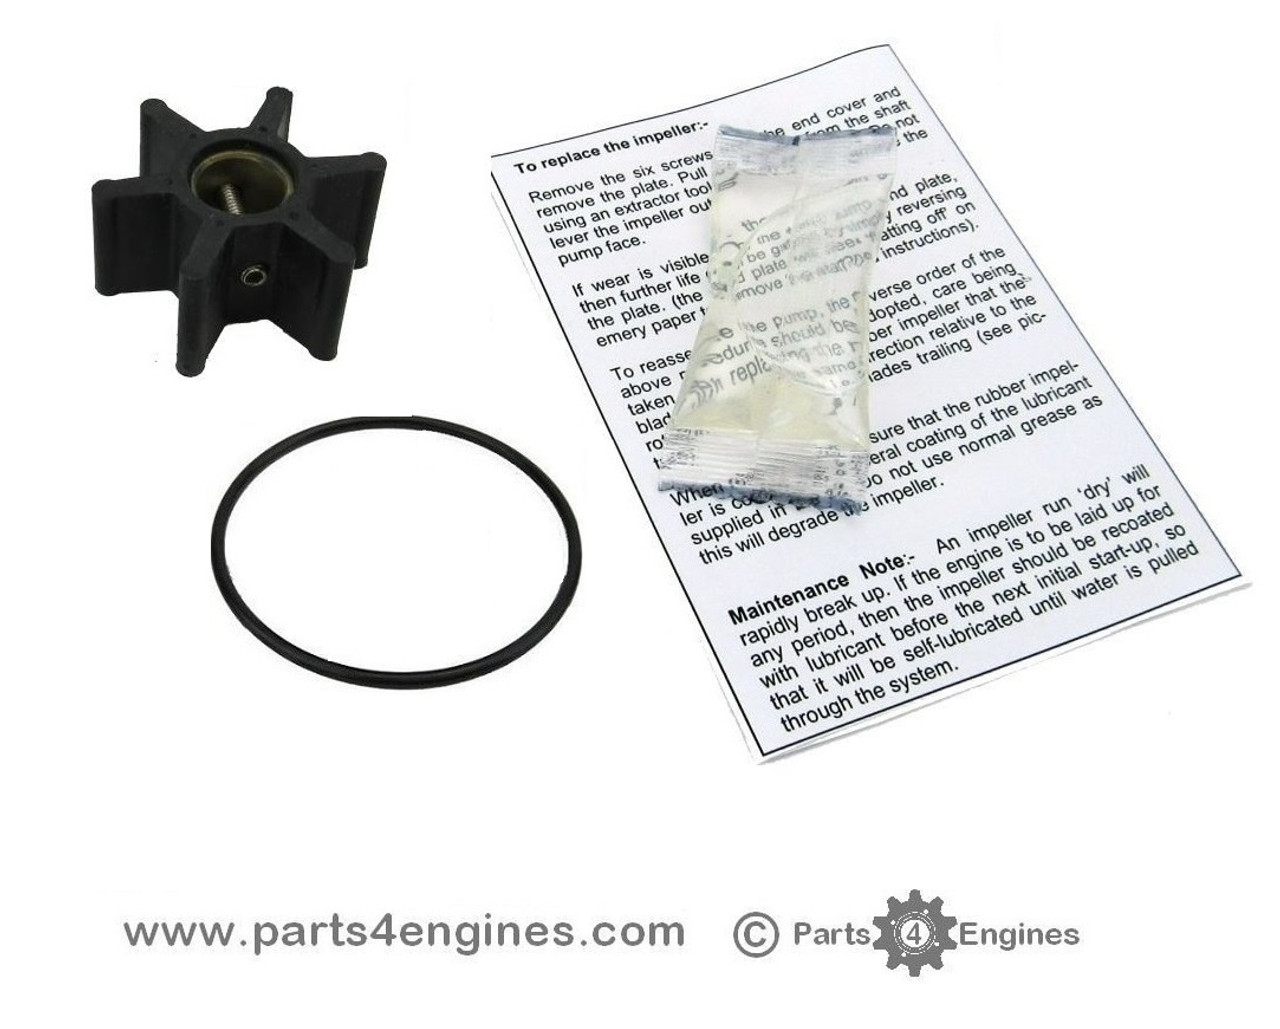 Yanmar 3YM20 Raw water pump impeller kit - parts4engines.com